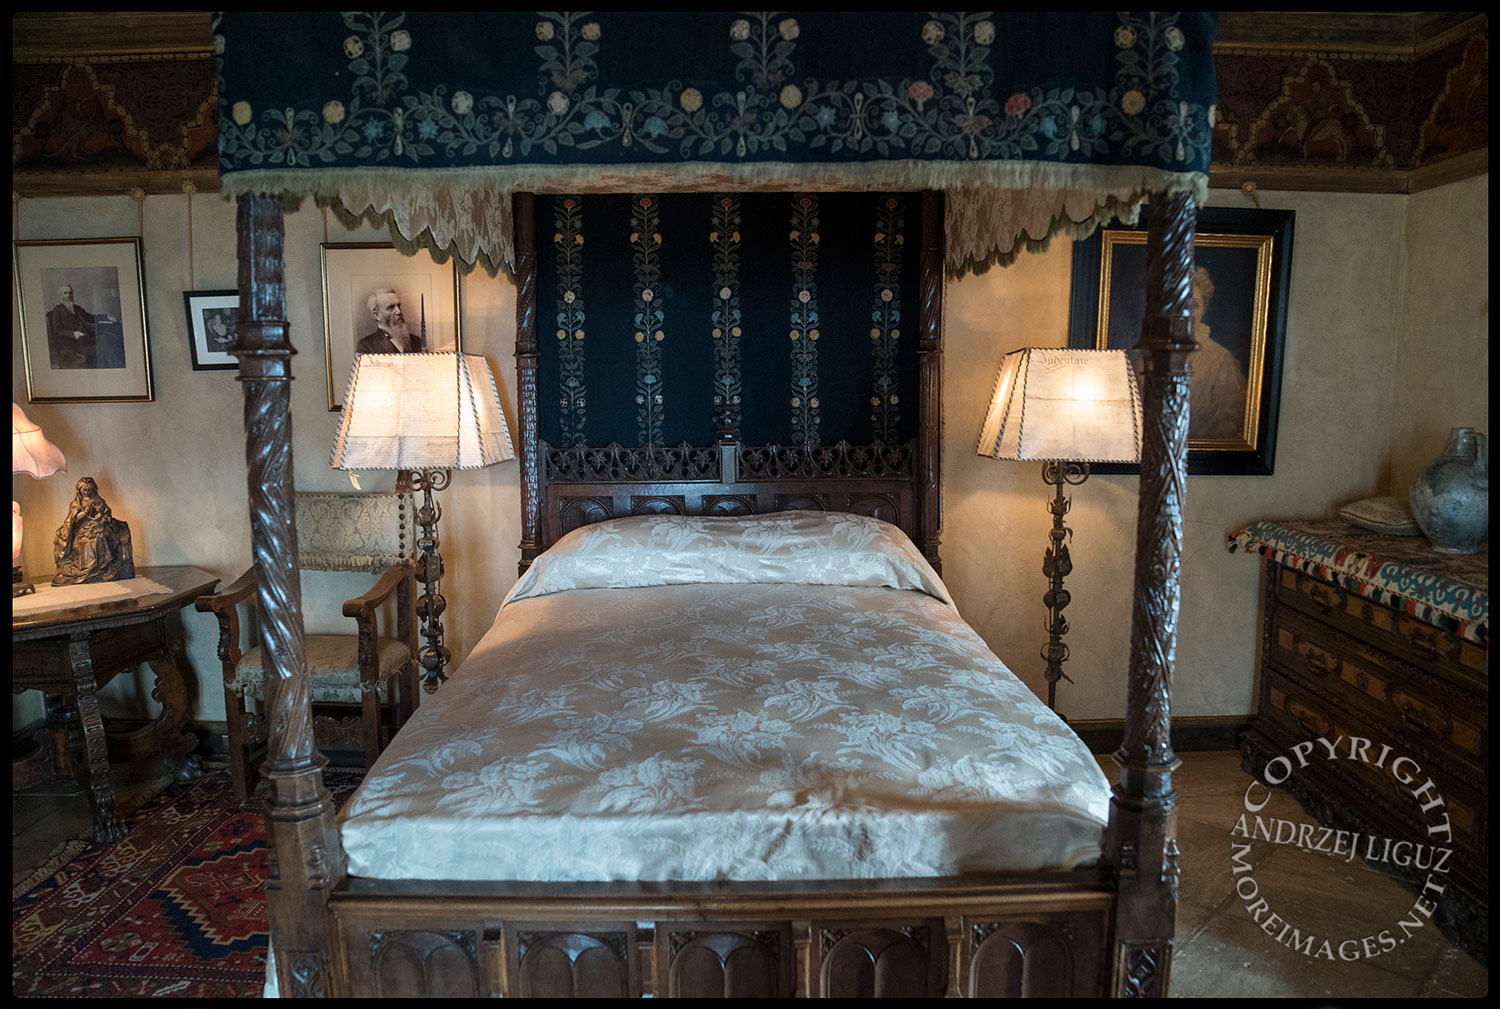 William Randolph Hearst's bedroom, Hearst Castle, San Simeon, CA 2015-03-02